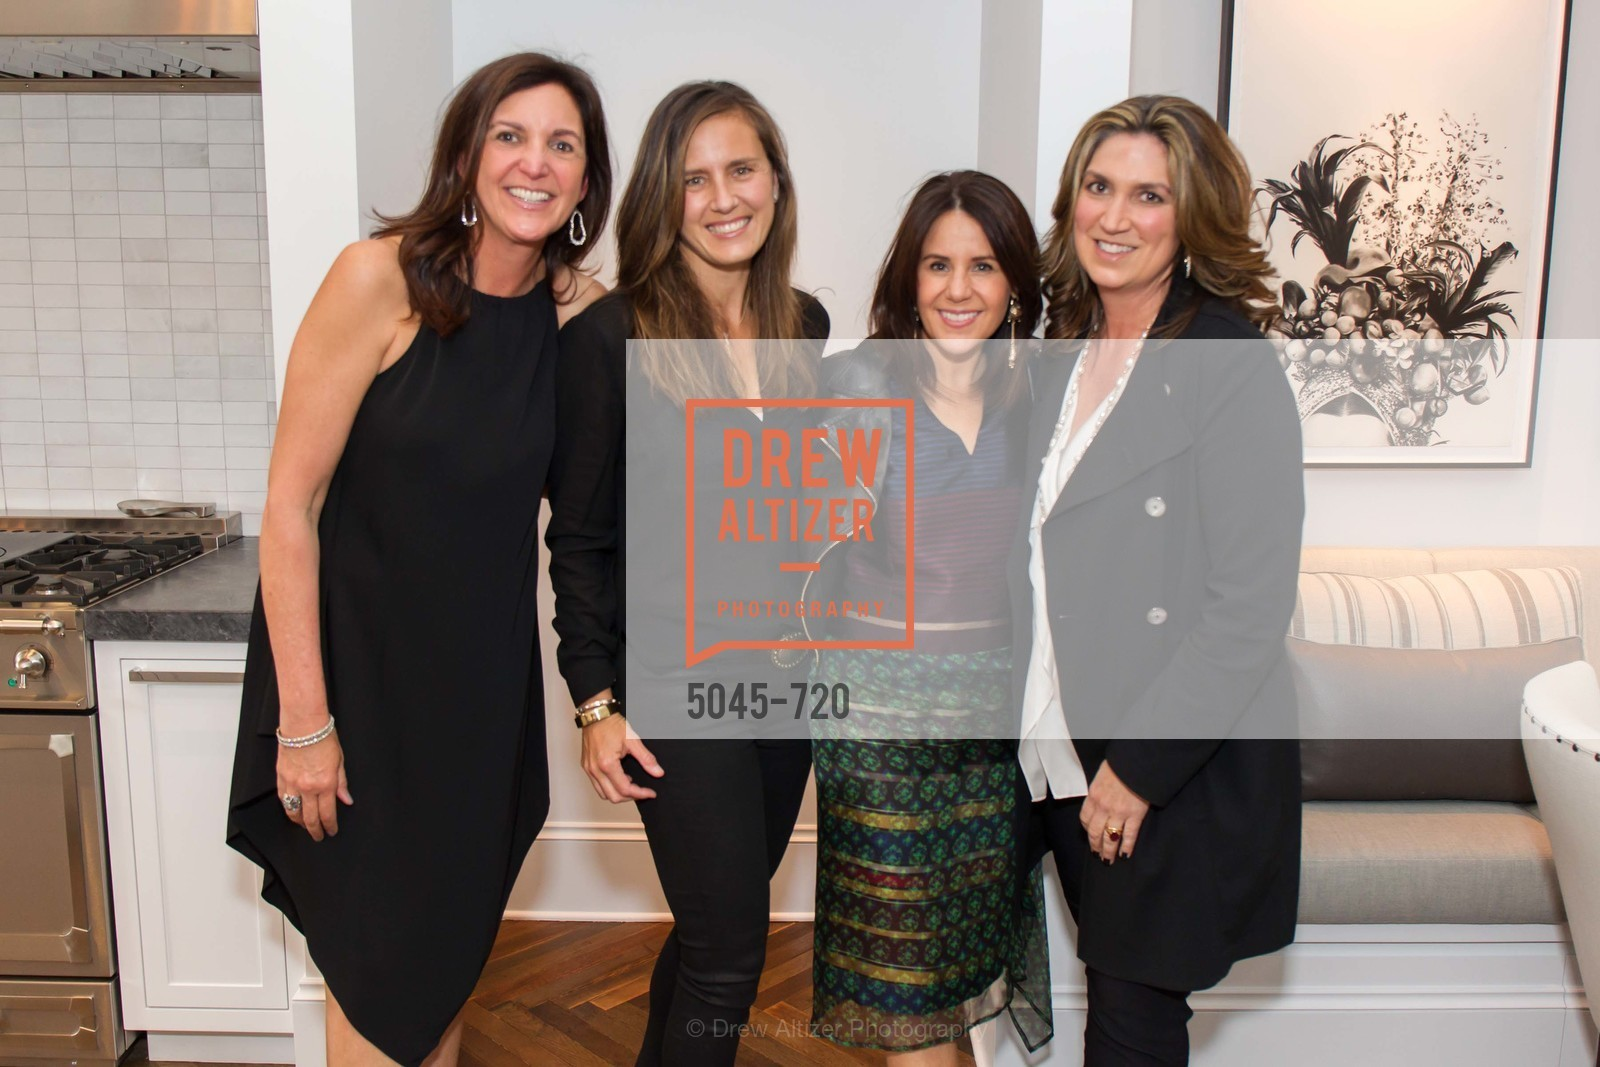 Jenna Feinberg, Becca Hydorn, Leslie Campoy, Marissa Brandon, C MAGAZINE Editors Cocktail Party, US, May 12th, 2015,Drew Altizer, Drew Altizer Photography, full-service agency, private events, San Francisco photographer, photographer california